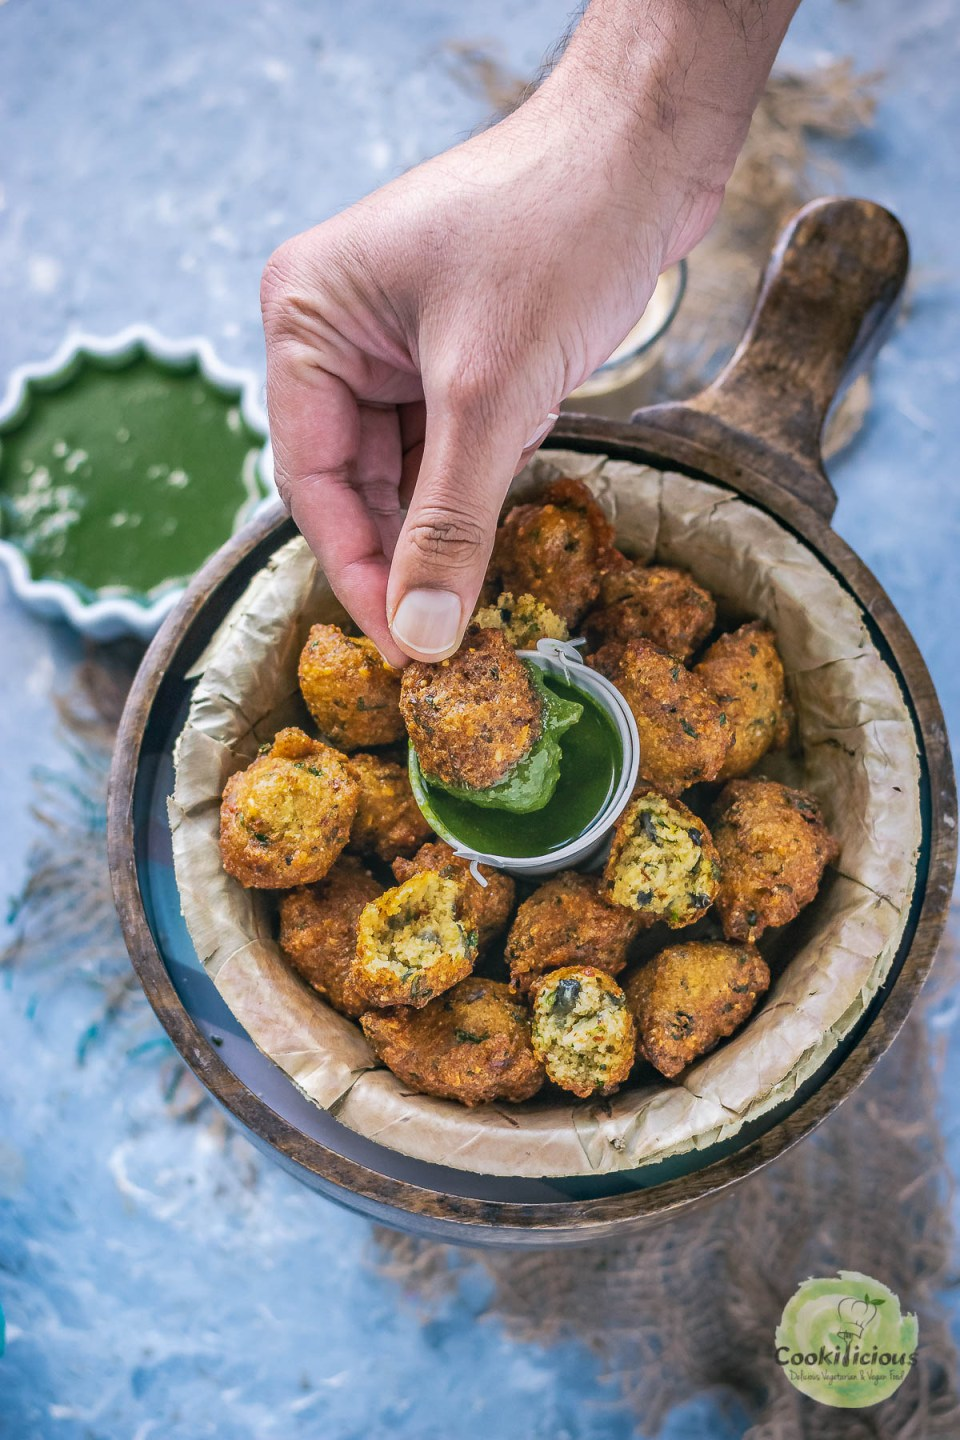 a hand dunking one Crispy Moong Dal Pakora (one of the popular easy vegan appetizers) into a bowl of green chutney